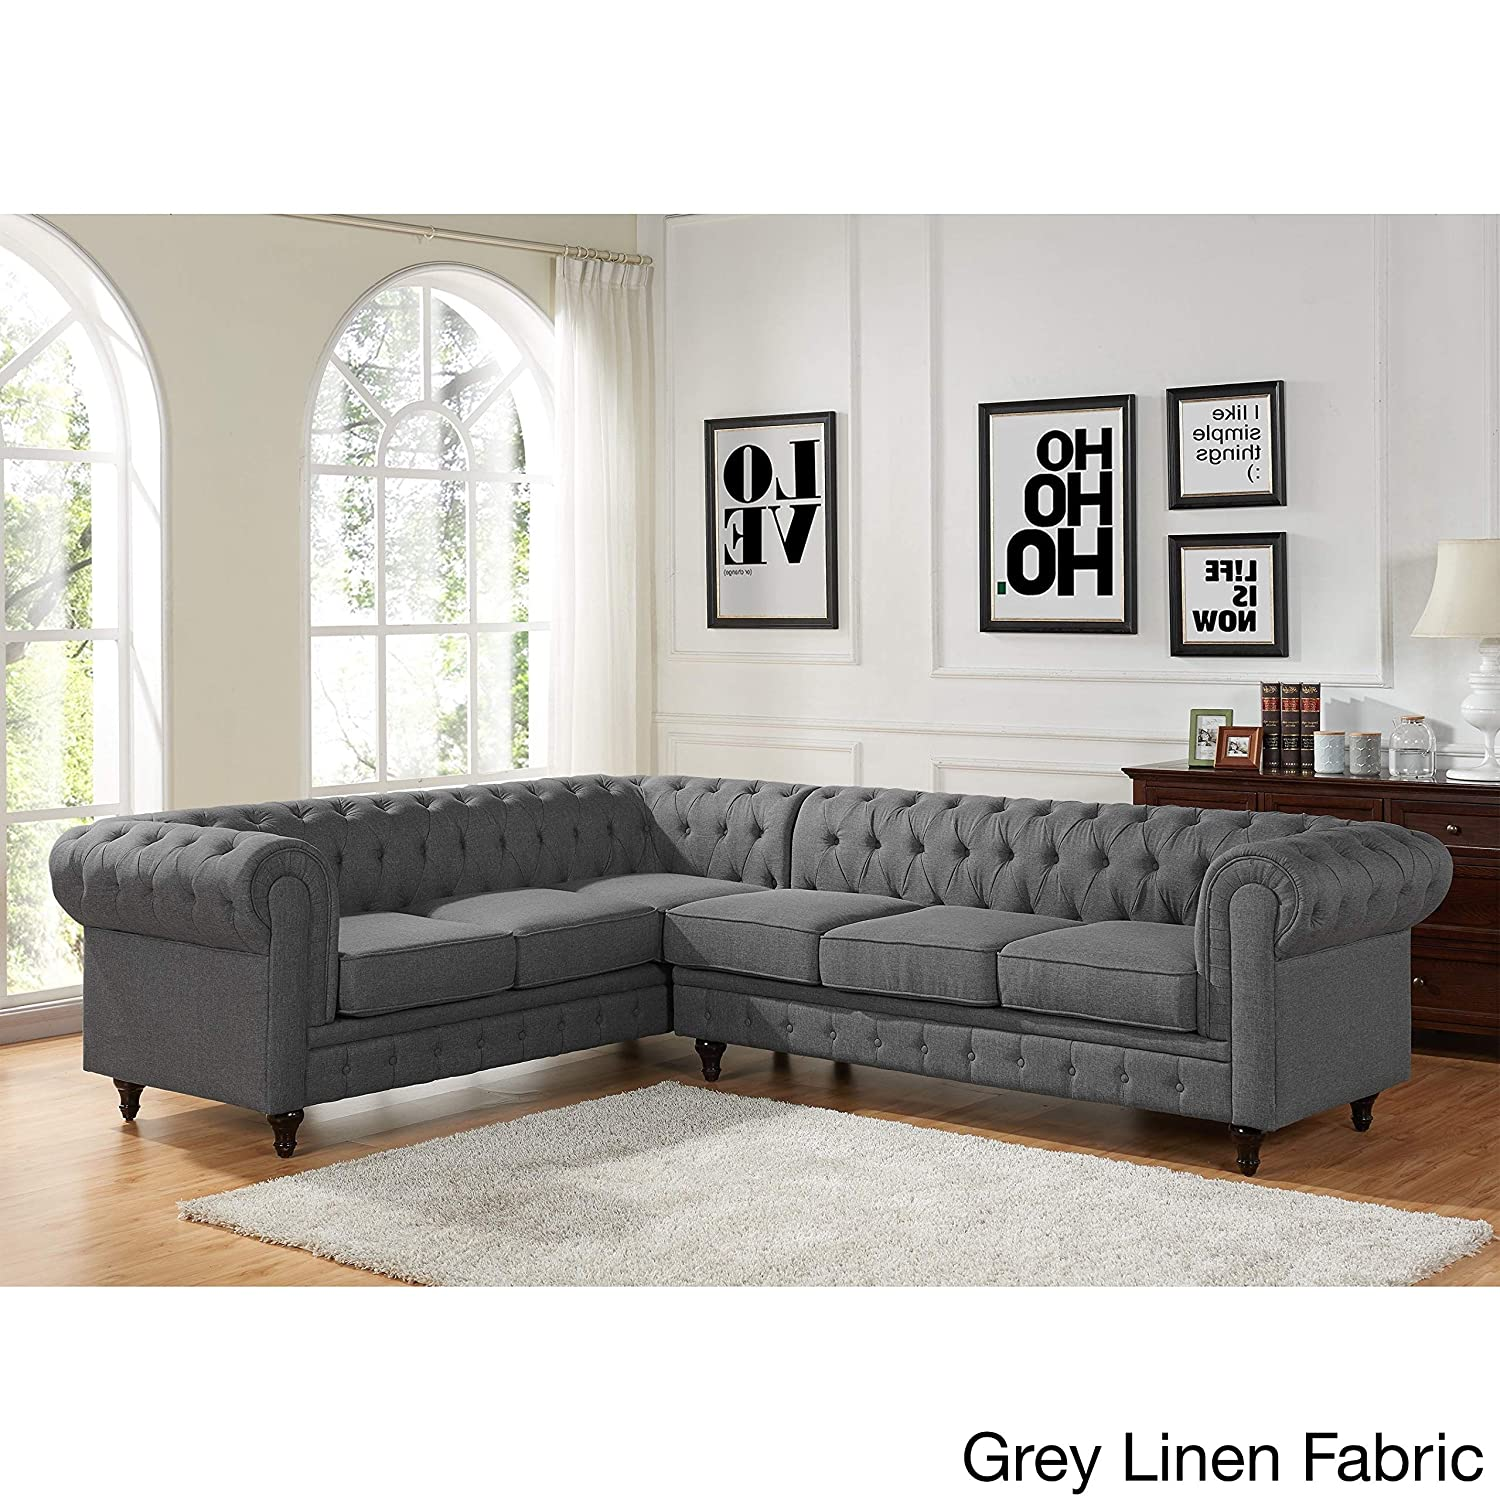 Amazon com us pride furniture sophia modern style tufted rolled arm right facing chaise sectional sofa grey kitchen dining